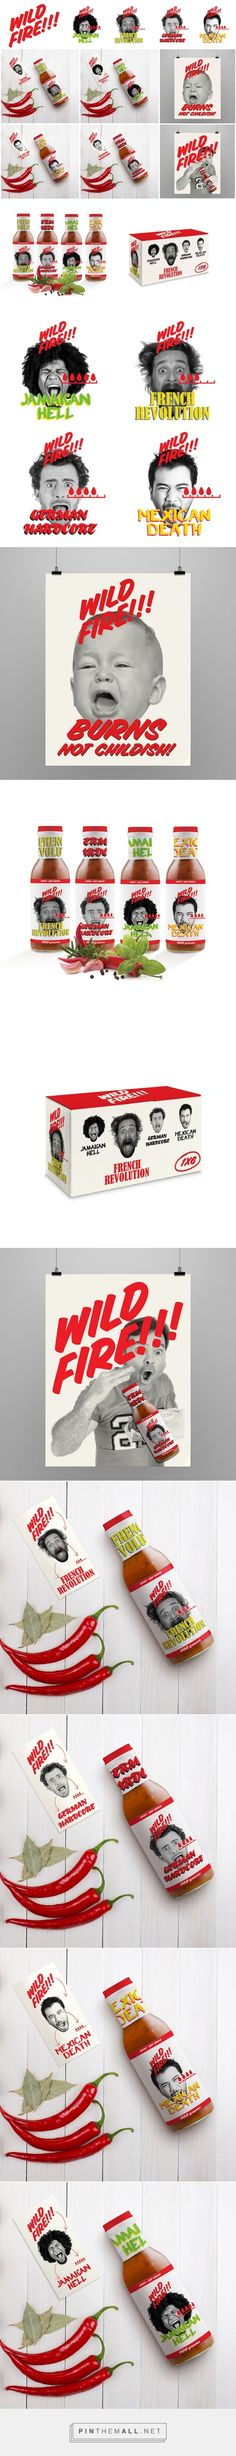 25 Fantastic Package Designs